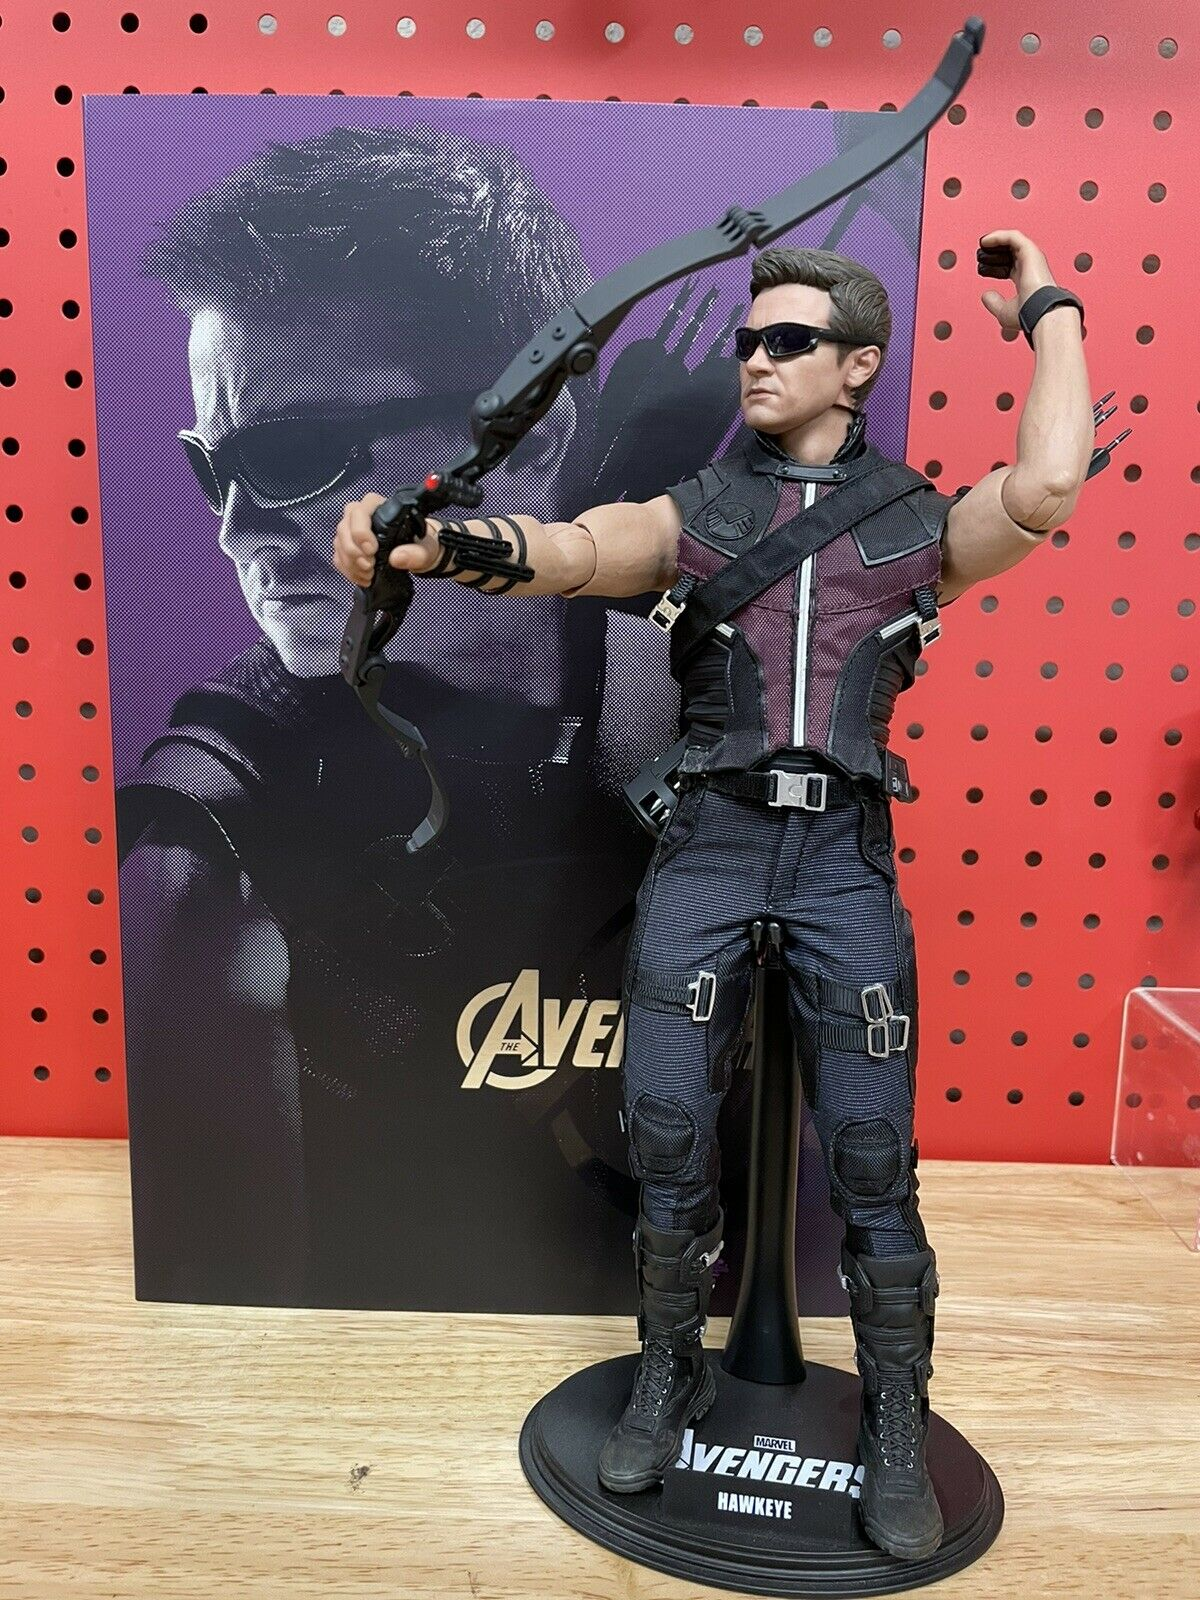 Hot Toys Hawkeye The Avengers Hawkeye Action Figure 1/6th scale MMS172 PRE-OWNED on eBay thumbnail